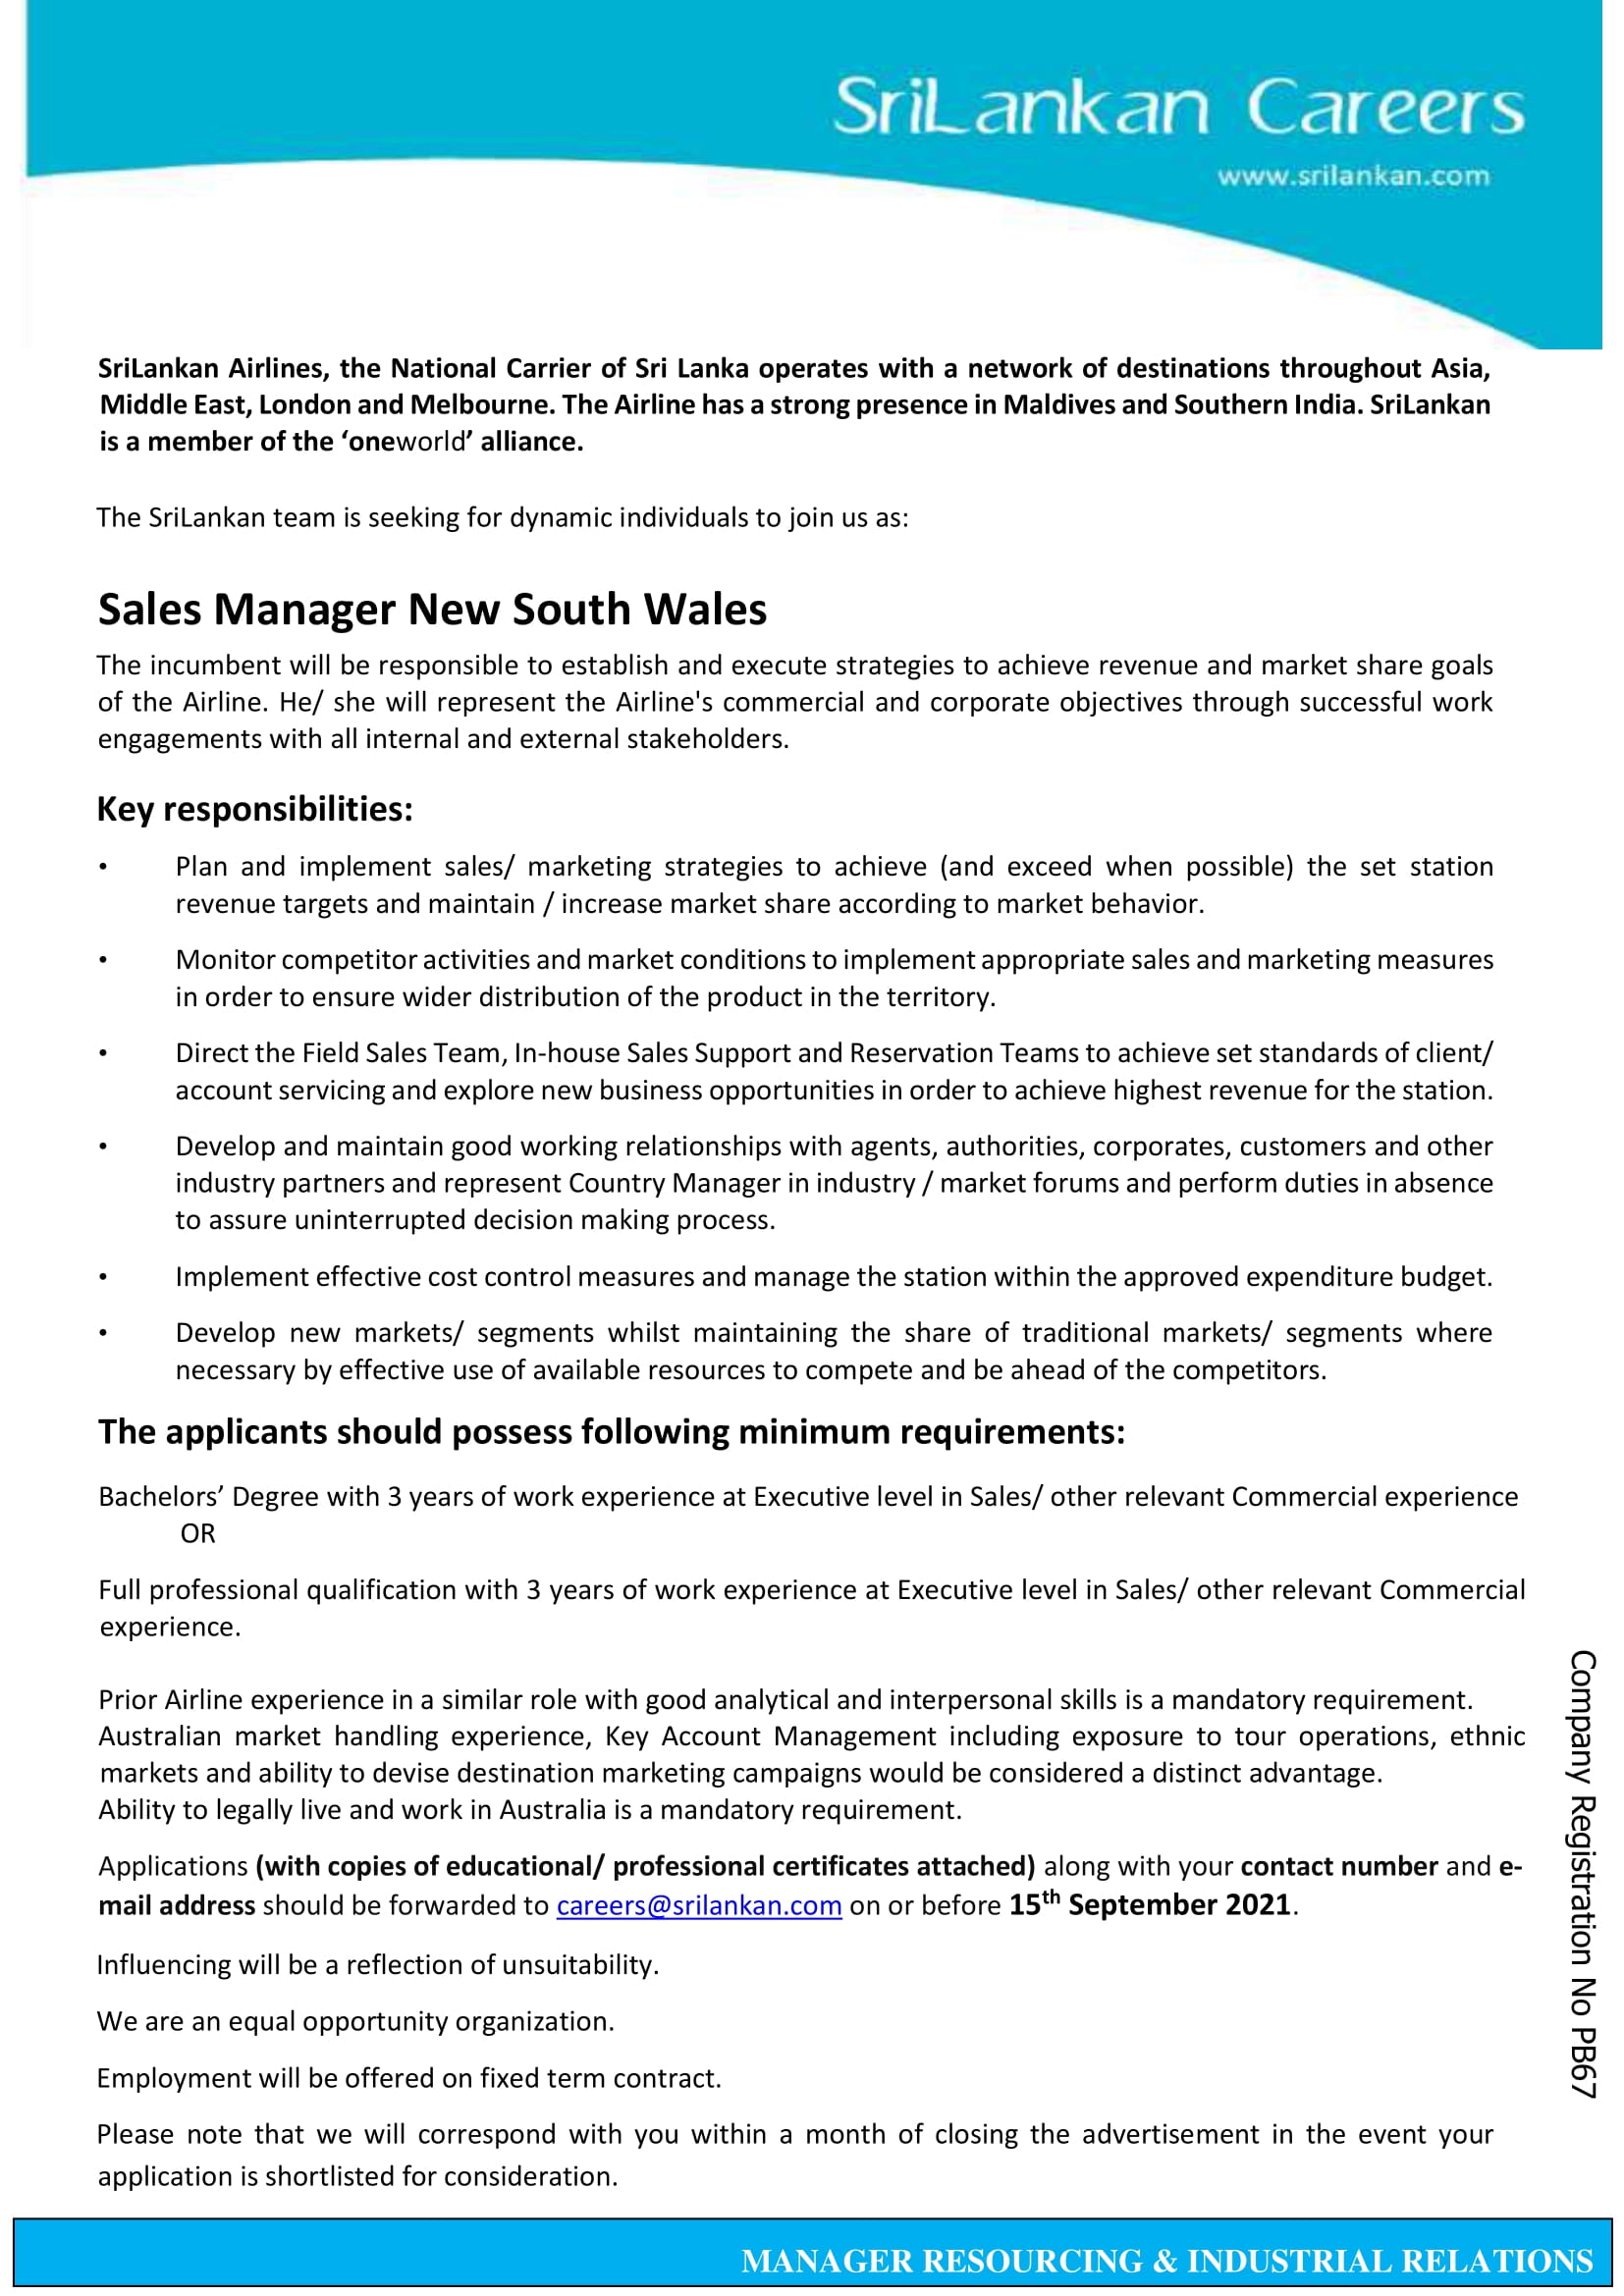 Sales Manager New South Wales